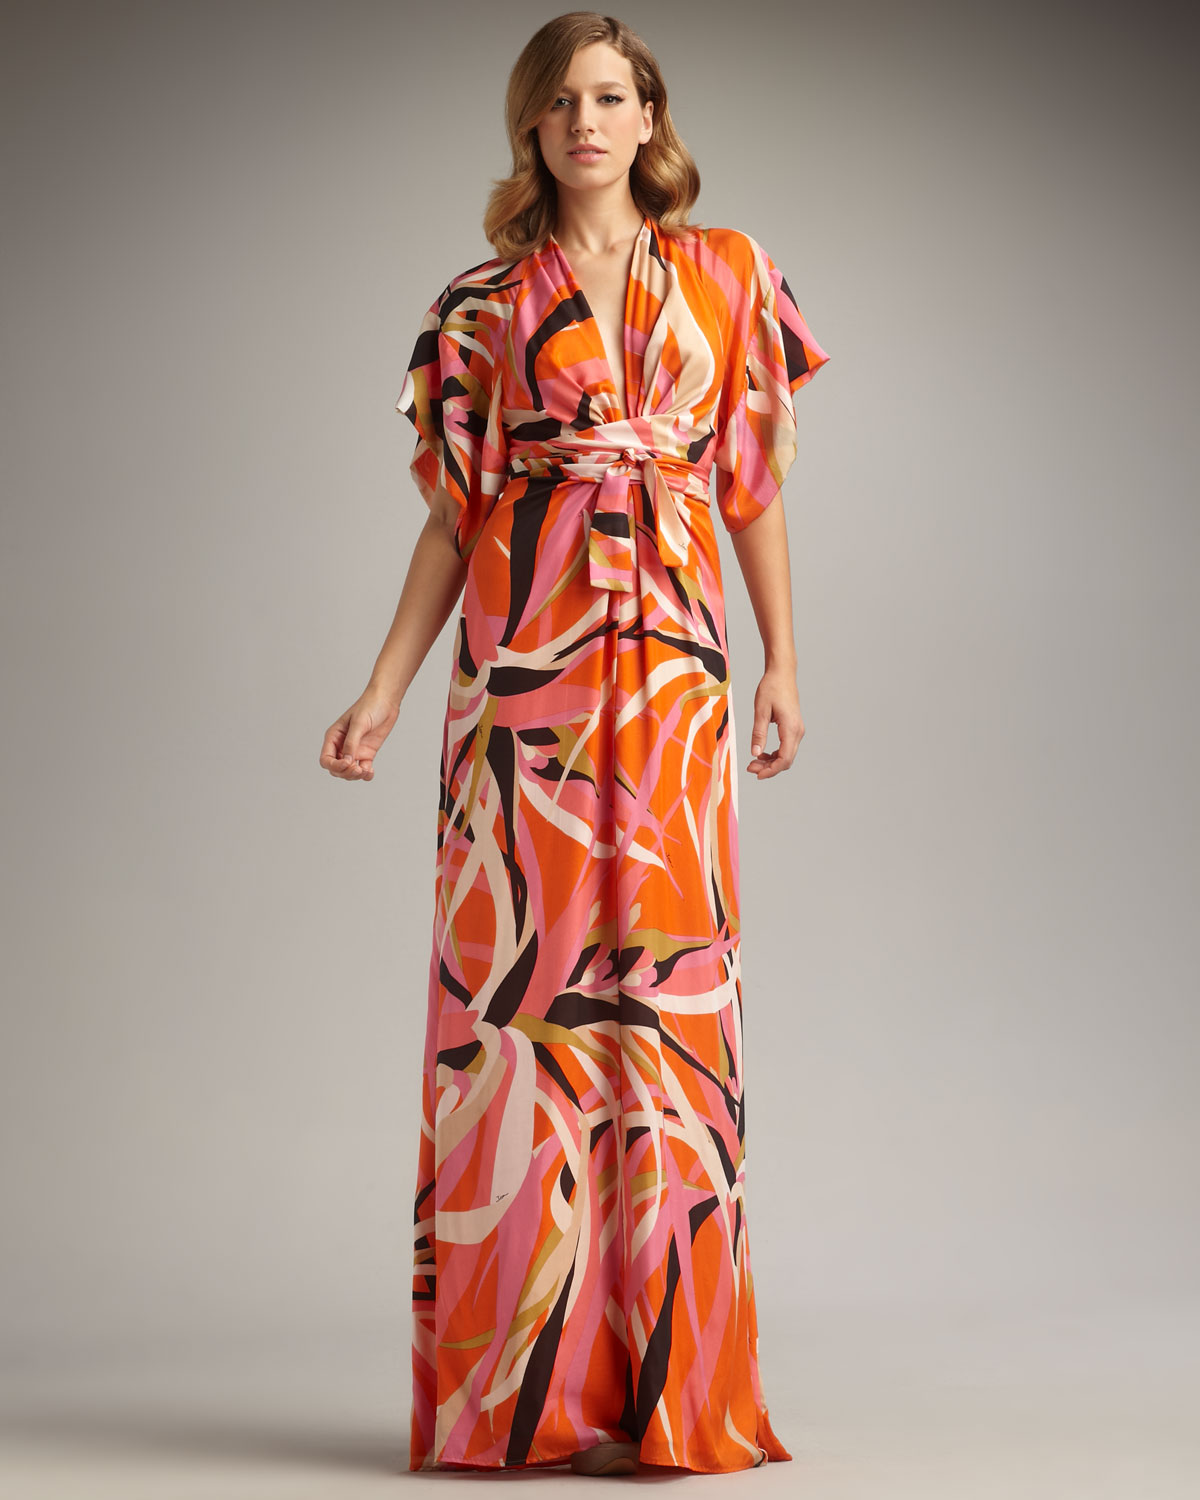 Issa Short-sleeve Kimono Maxi Dress in Orange  Lyst